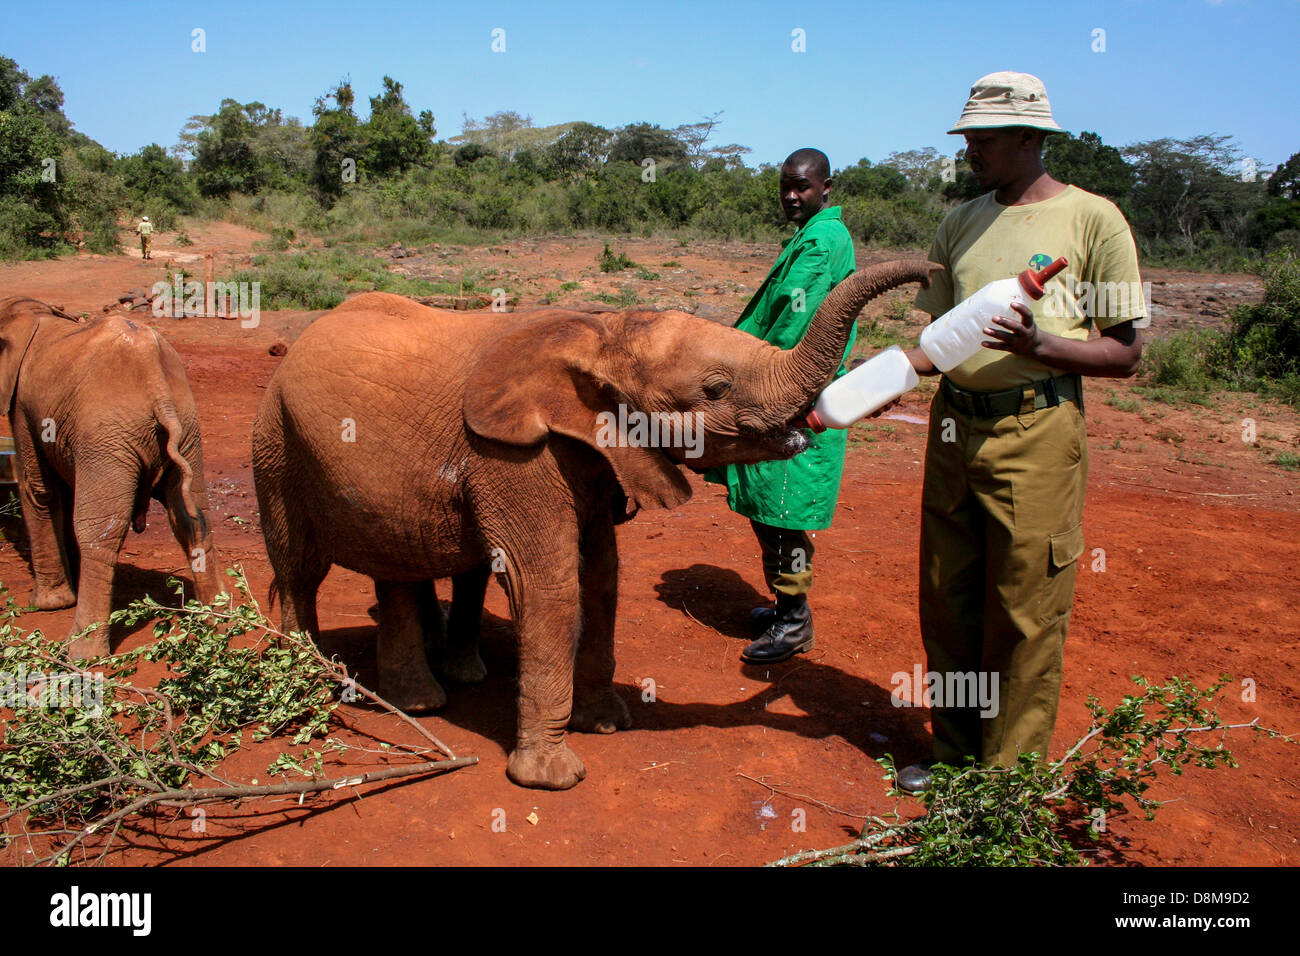 Lunch time for an orphaned elephant at The David Sheldrick Wildlife Trust - Stock Image